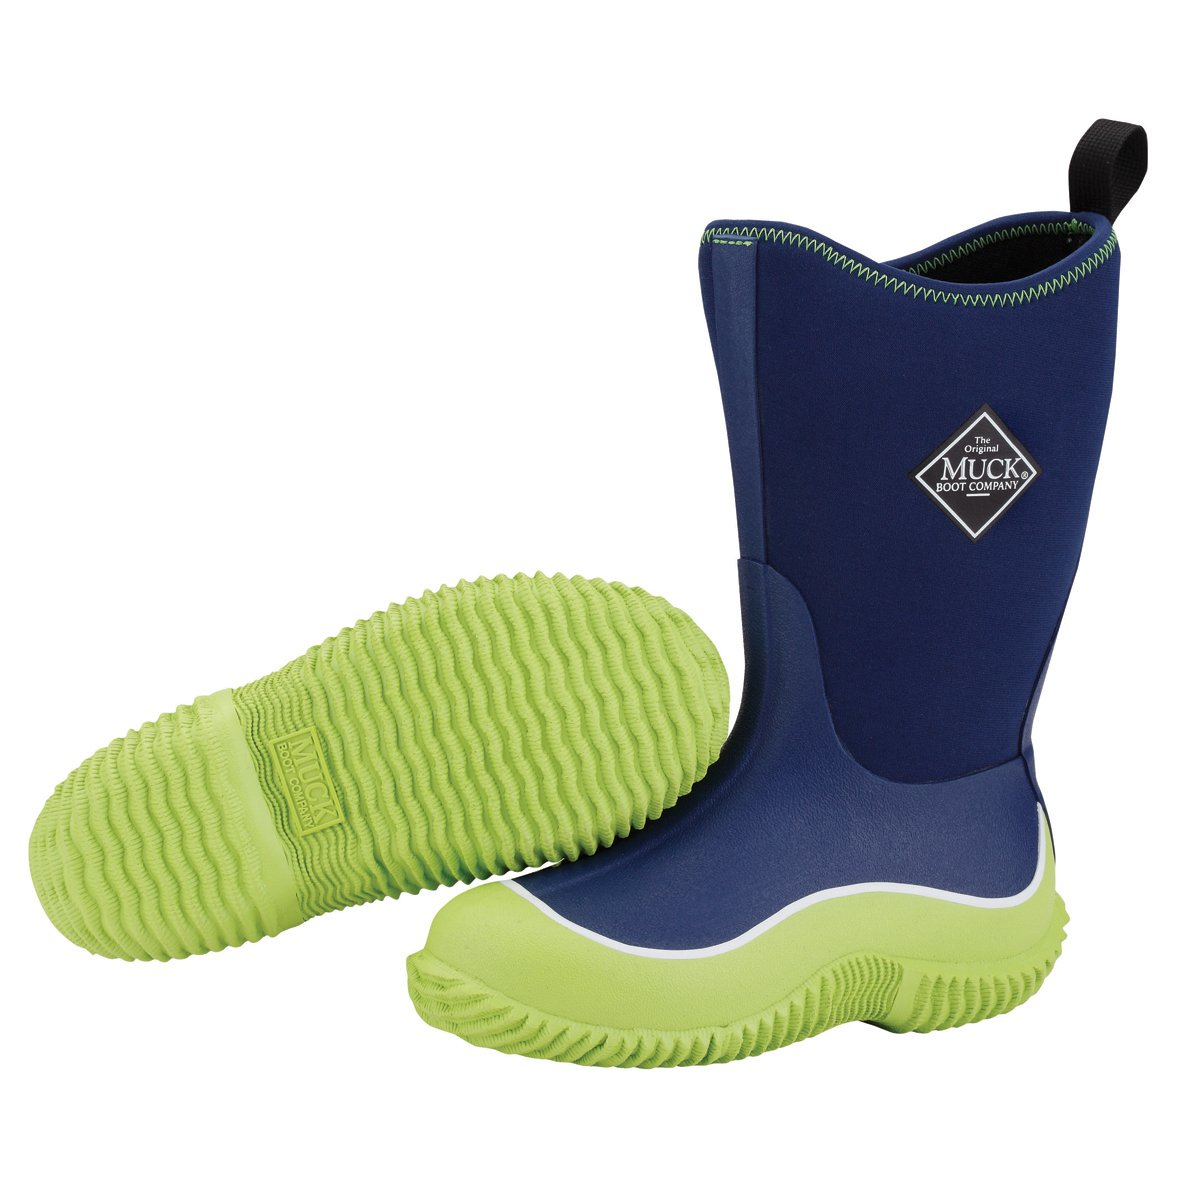 MuckBoots Hale Boot,Green/Navy,1 M US Little Kid